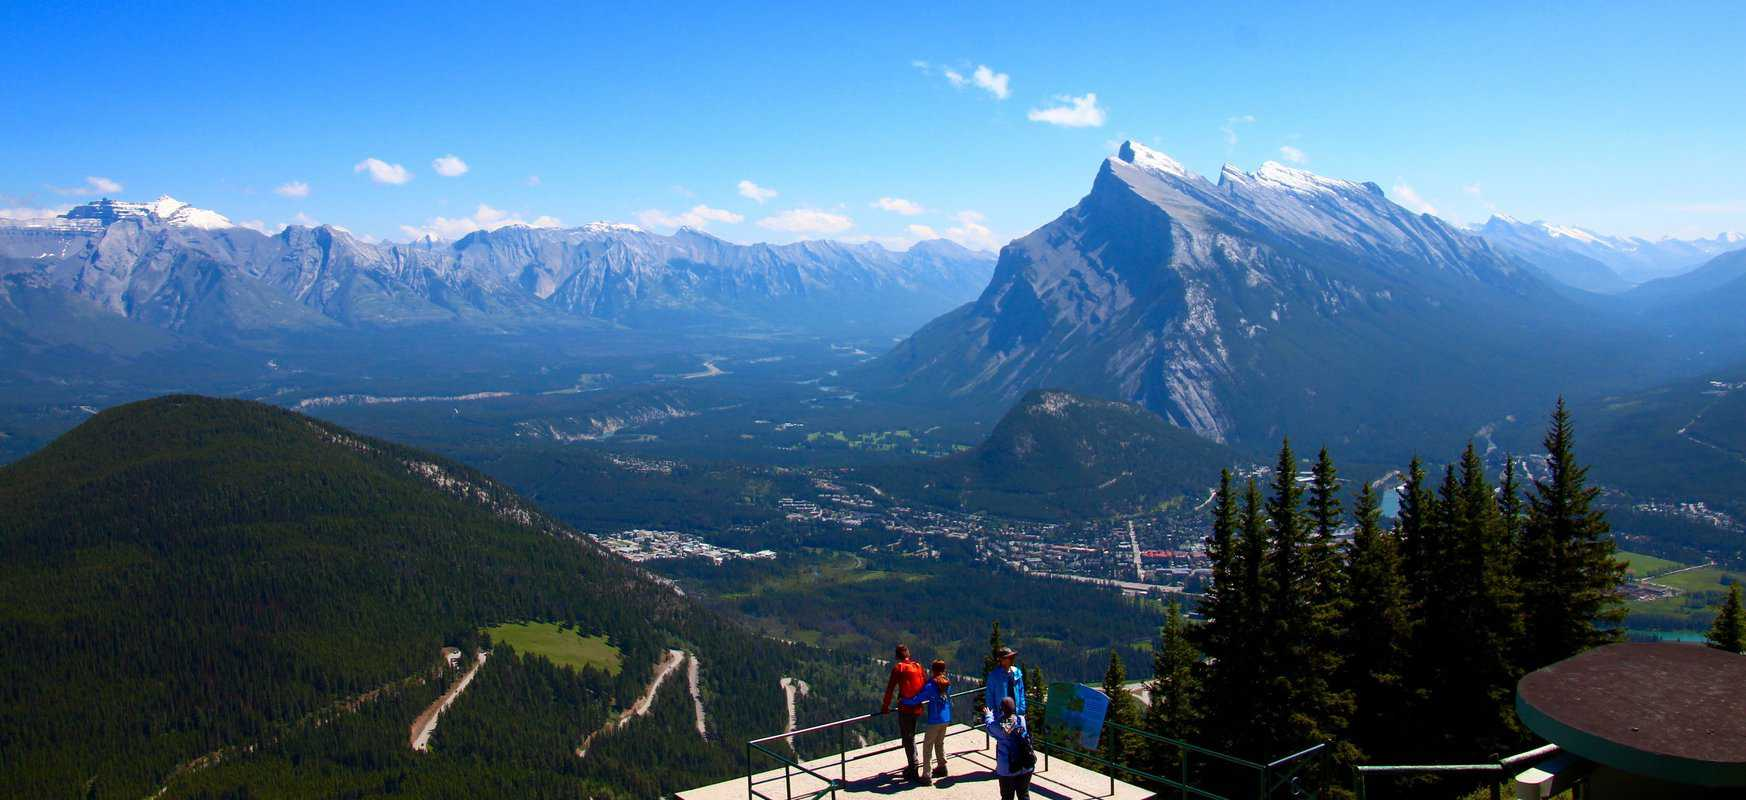 A view of Banff and the Bow Valley, Mt. Norquay